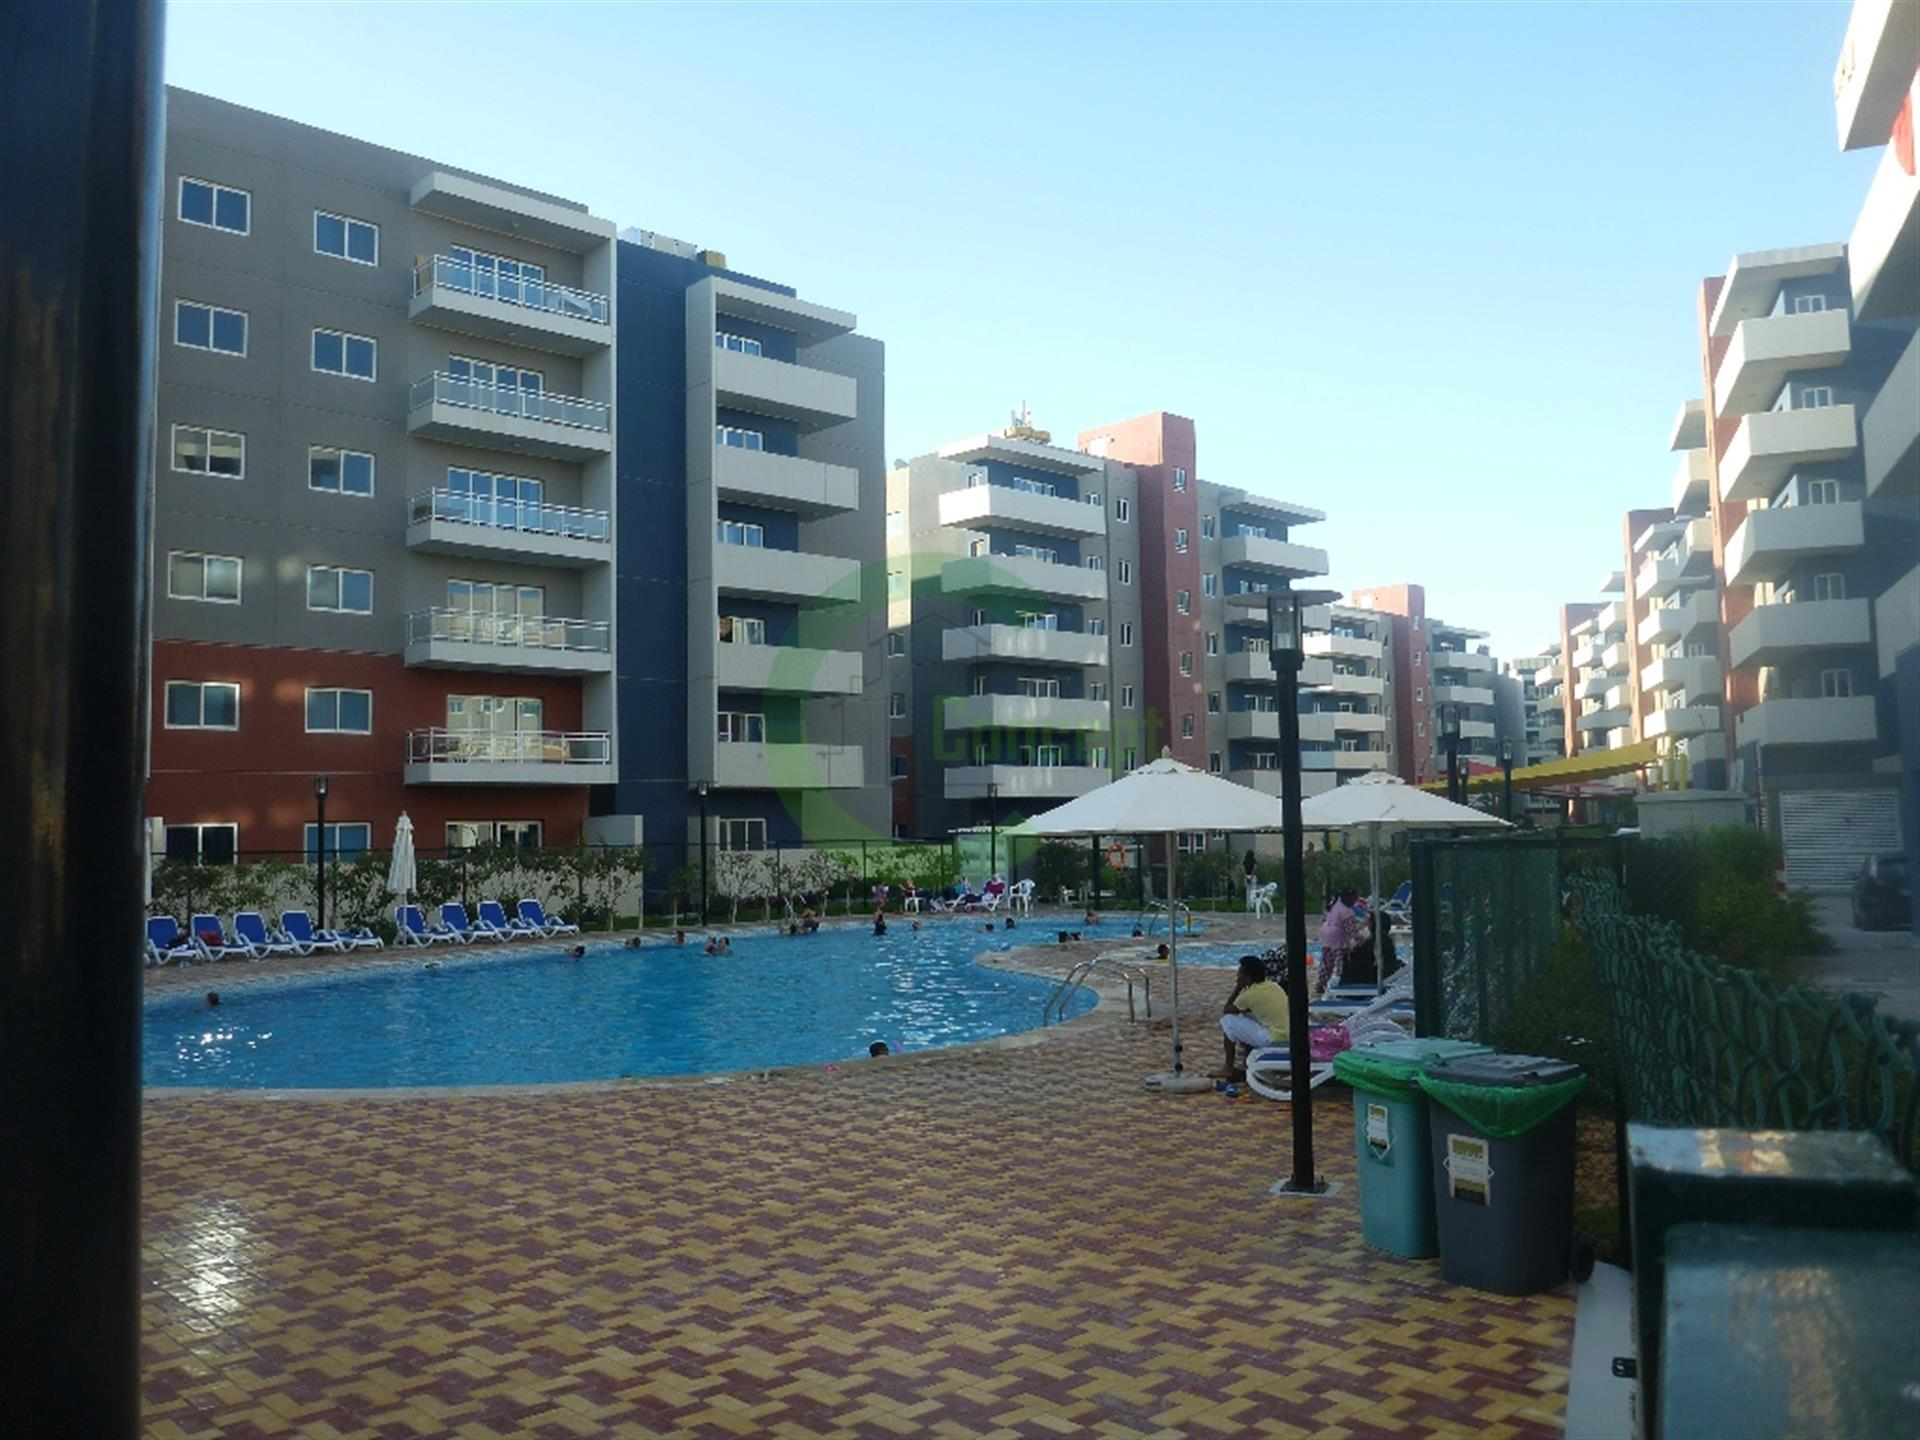 Next to the pool: vacant 1BR apt w/ dressing